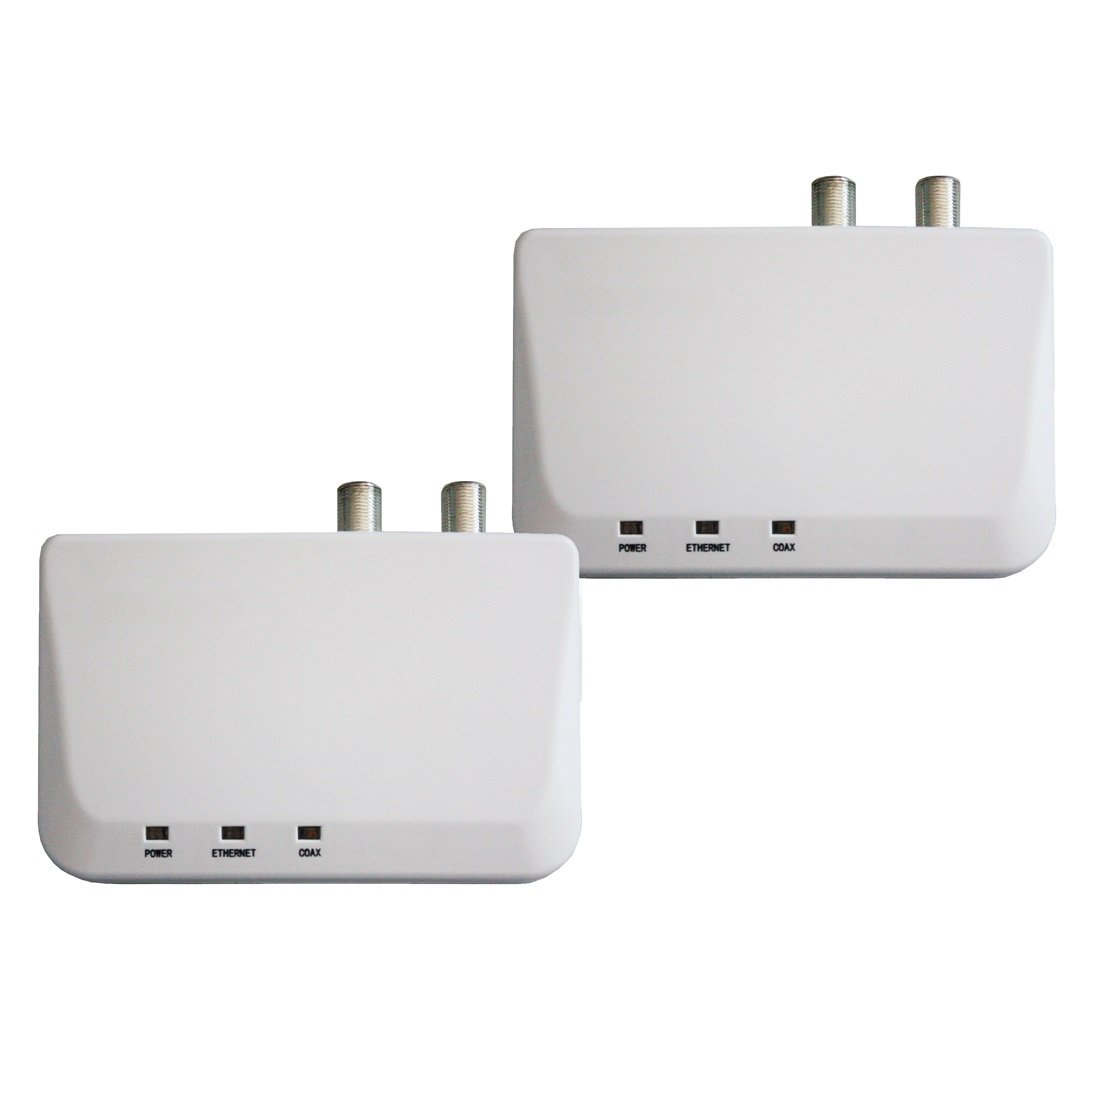 Kiwee Broadband Bonded MoCA 2.0 Ethernet de alta velocidad (IP) a través de cable coaxial, Ethernet over Coax Adapter, 2 Pack (YTMC-51N1-M2): Amazon.es: ...